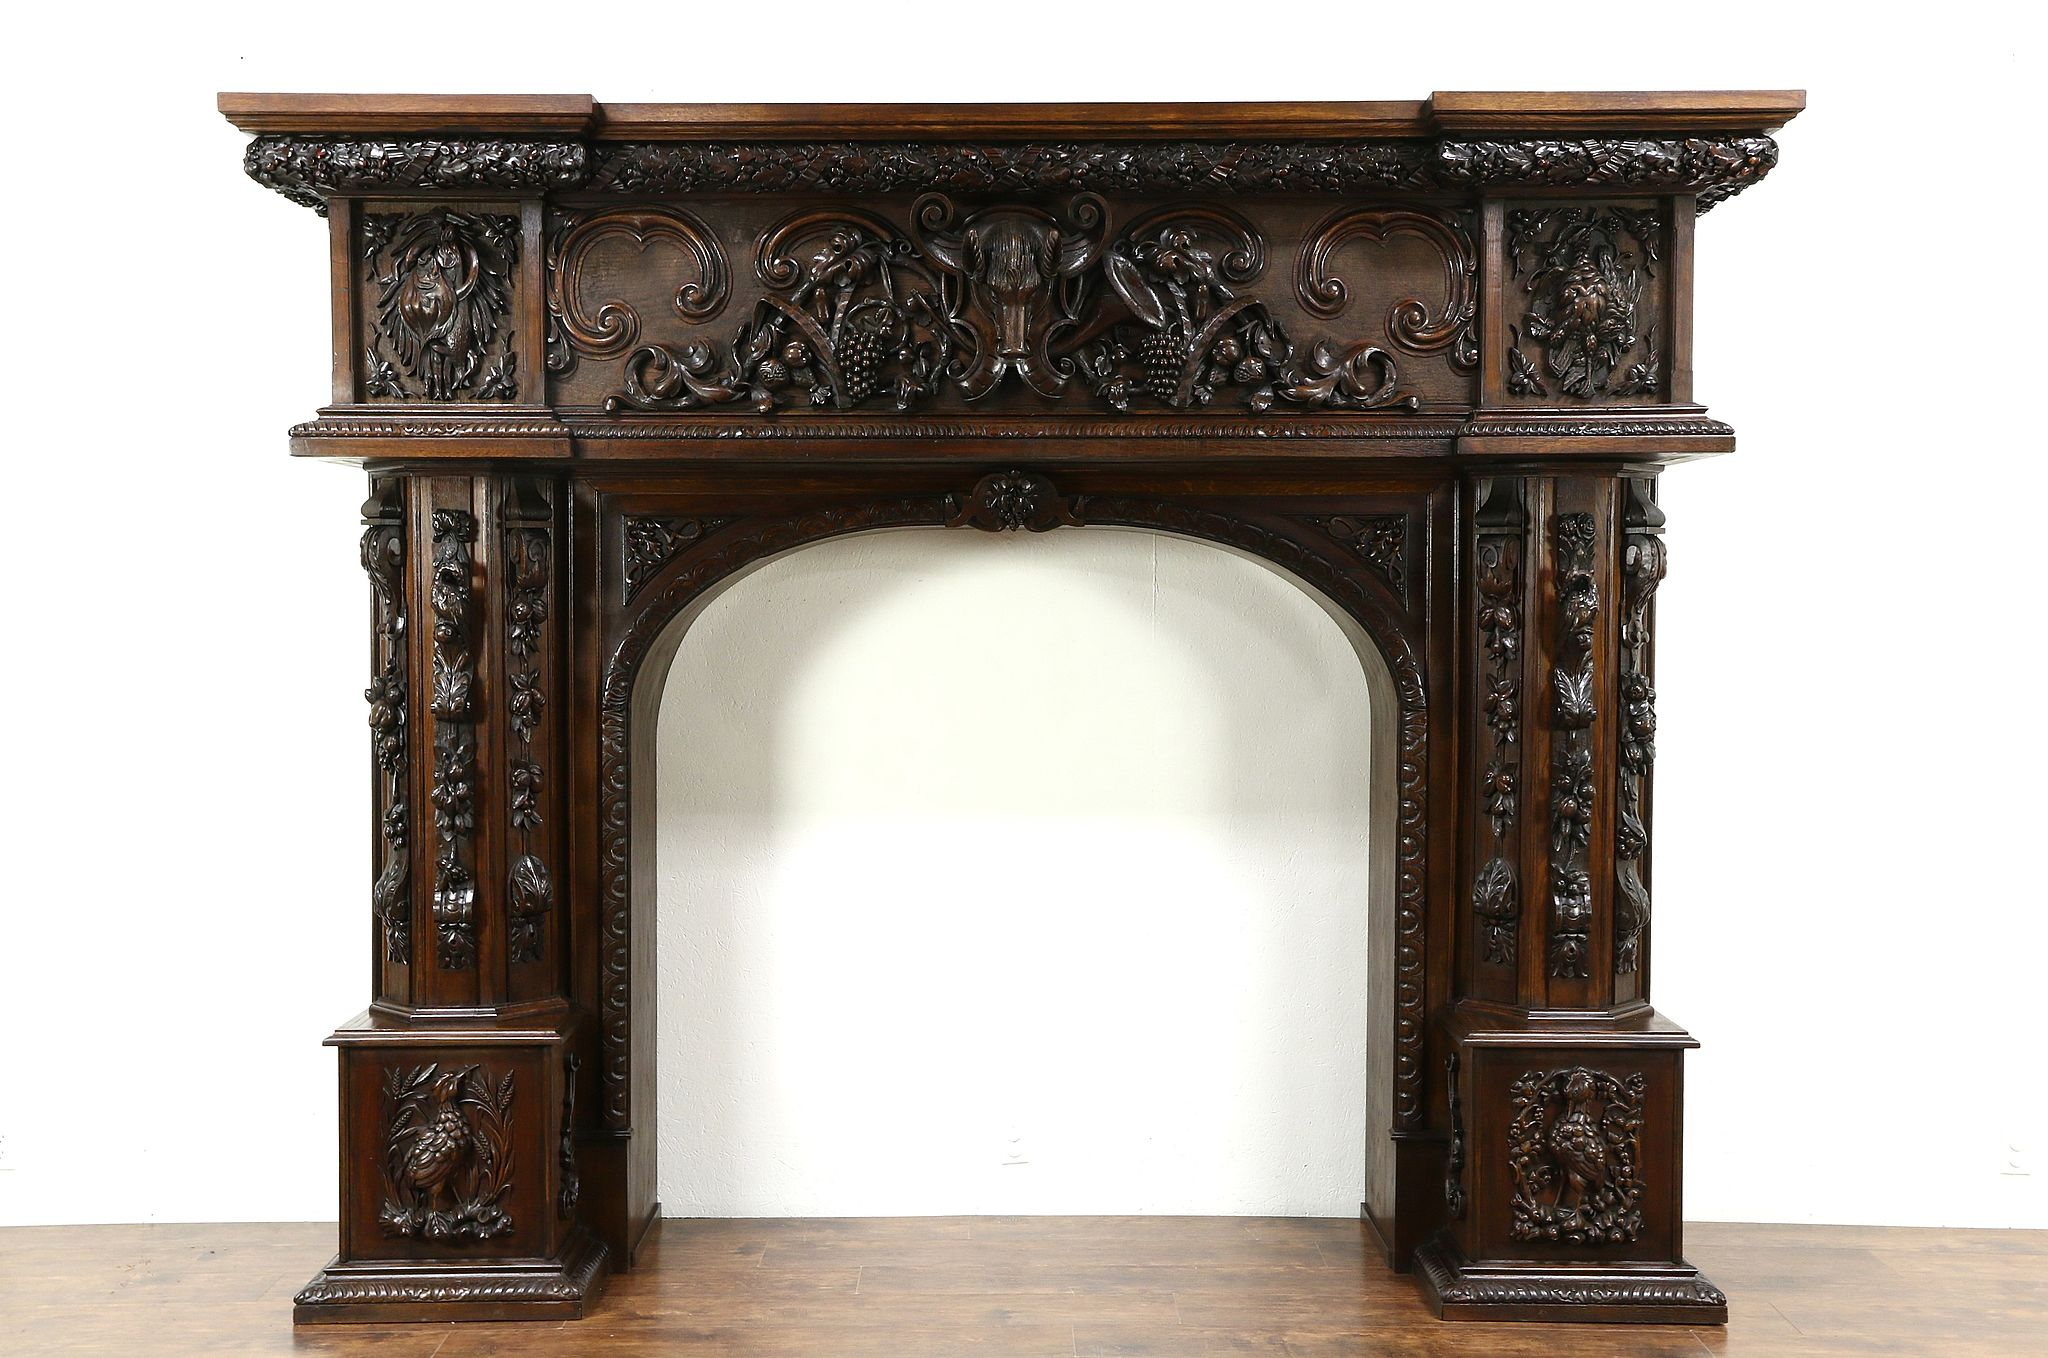 Carved Oak Antique Fireplace Lodge Mantel Or Archway Animal Sculptures 10 5